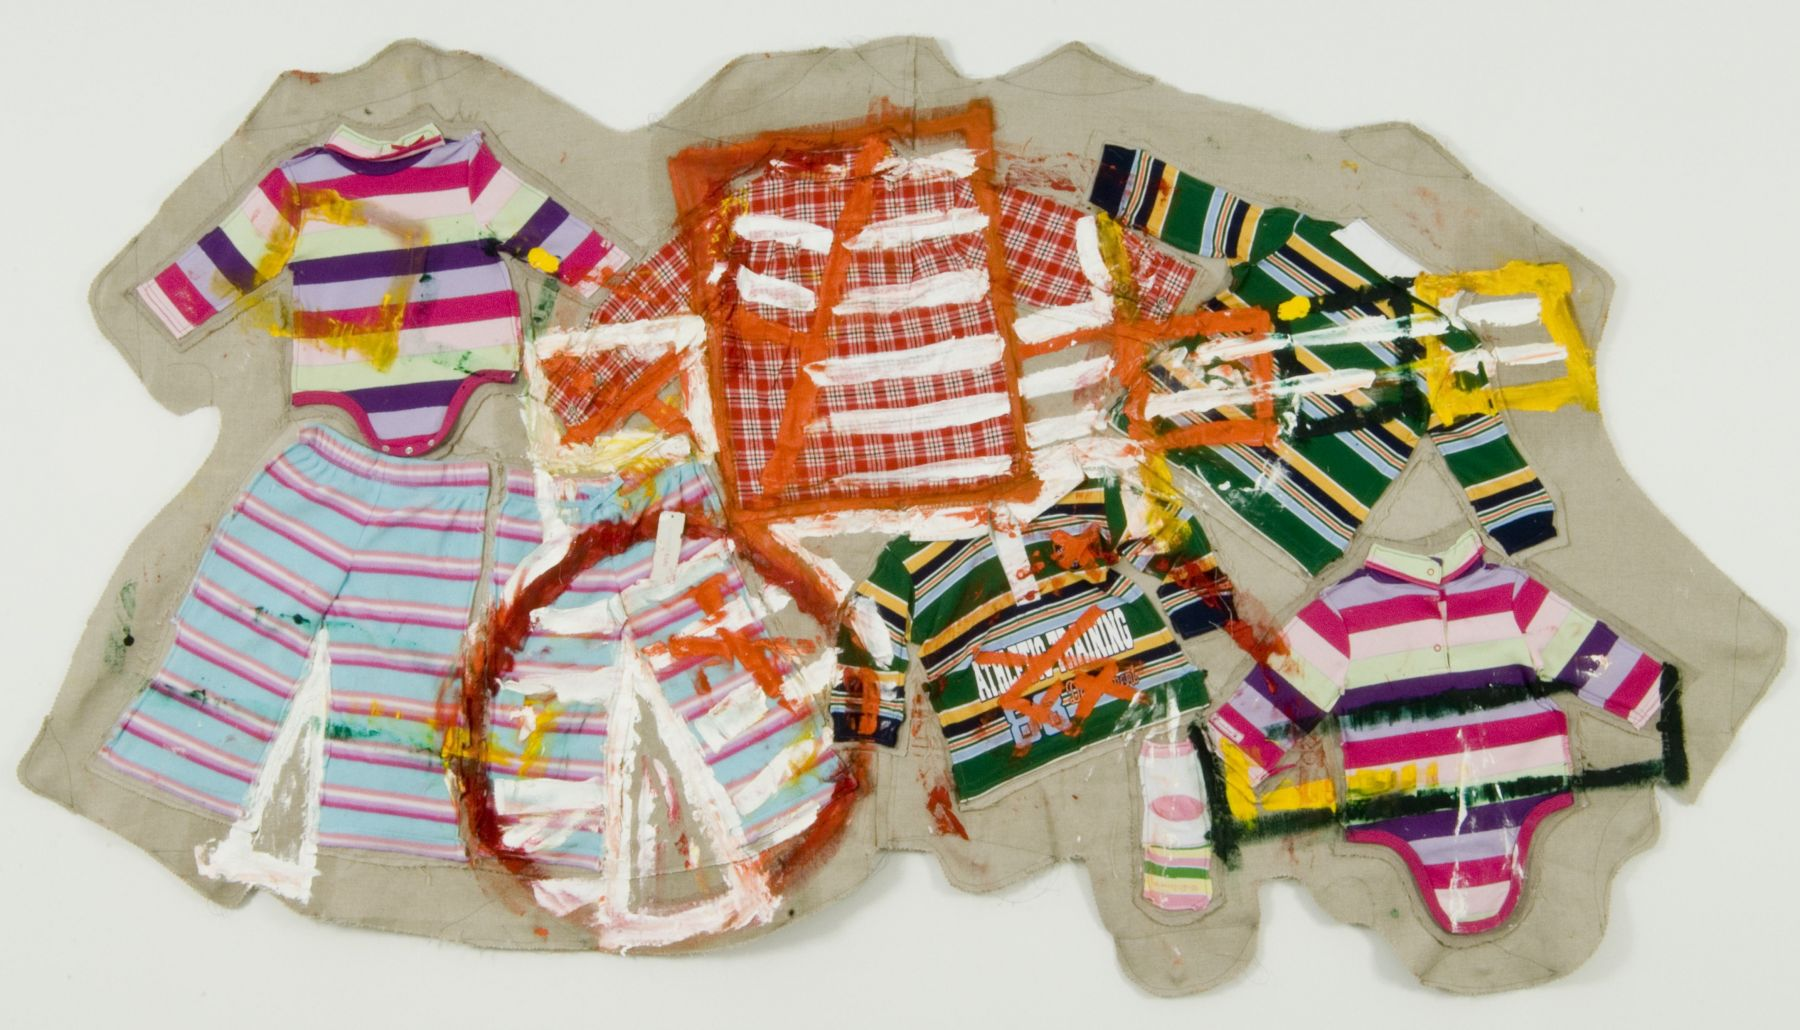 mixed media installation featuring baby clothes by mike cloud